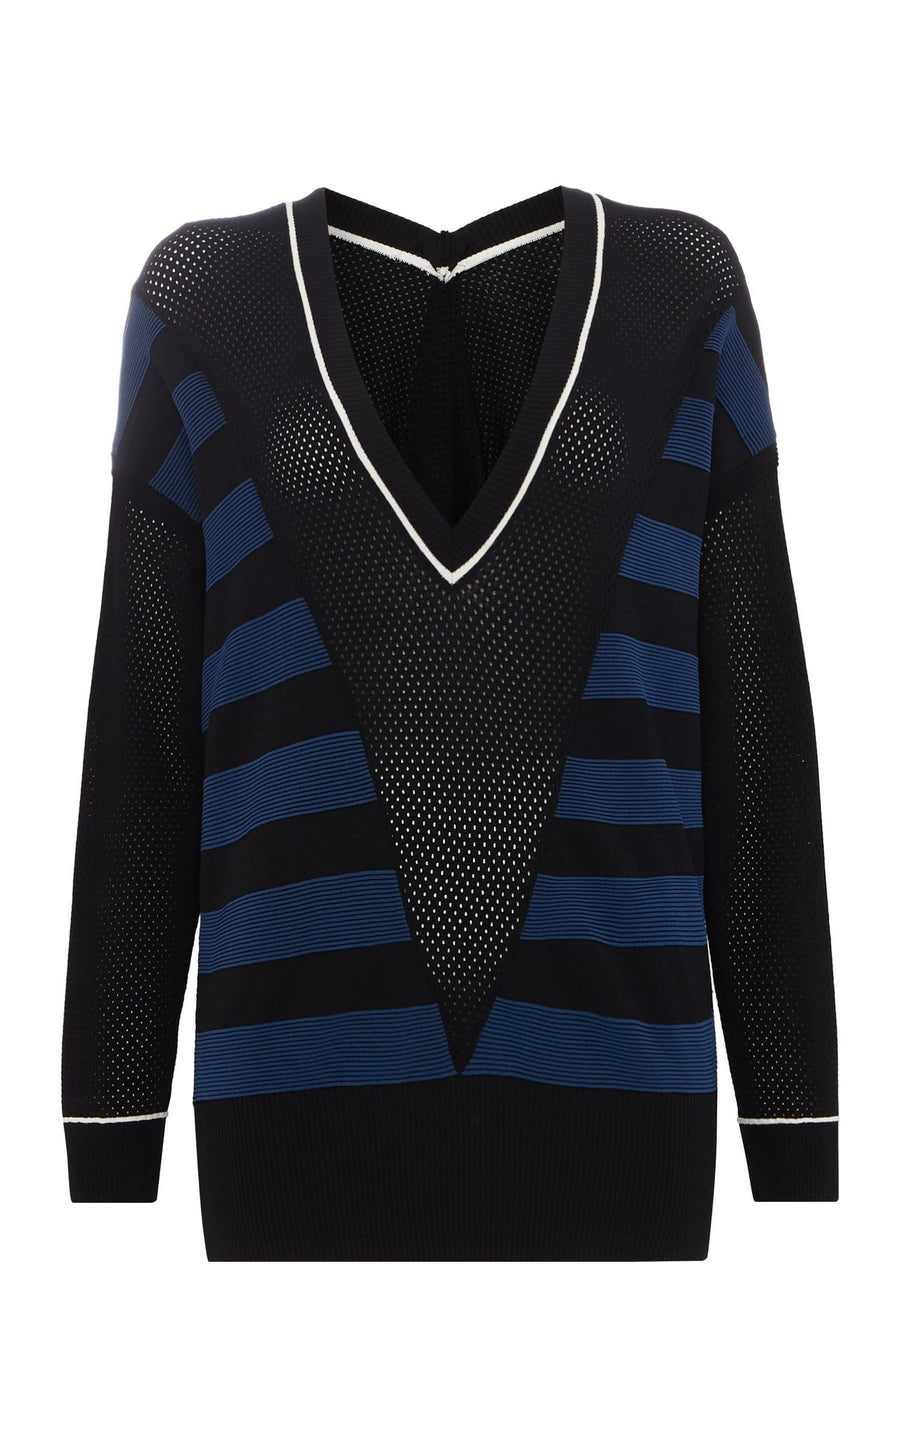 Lara Top In Black/Ultramarine/White from Roland Mouret